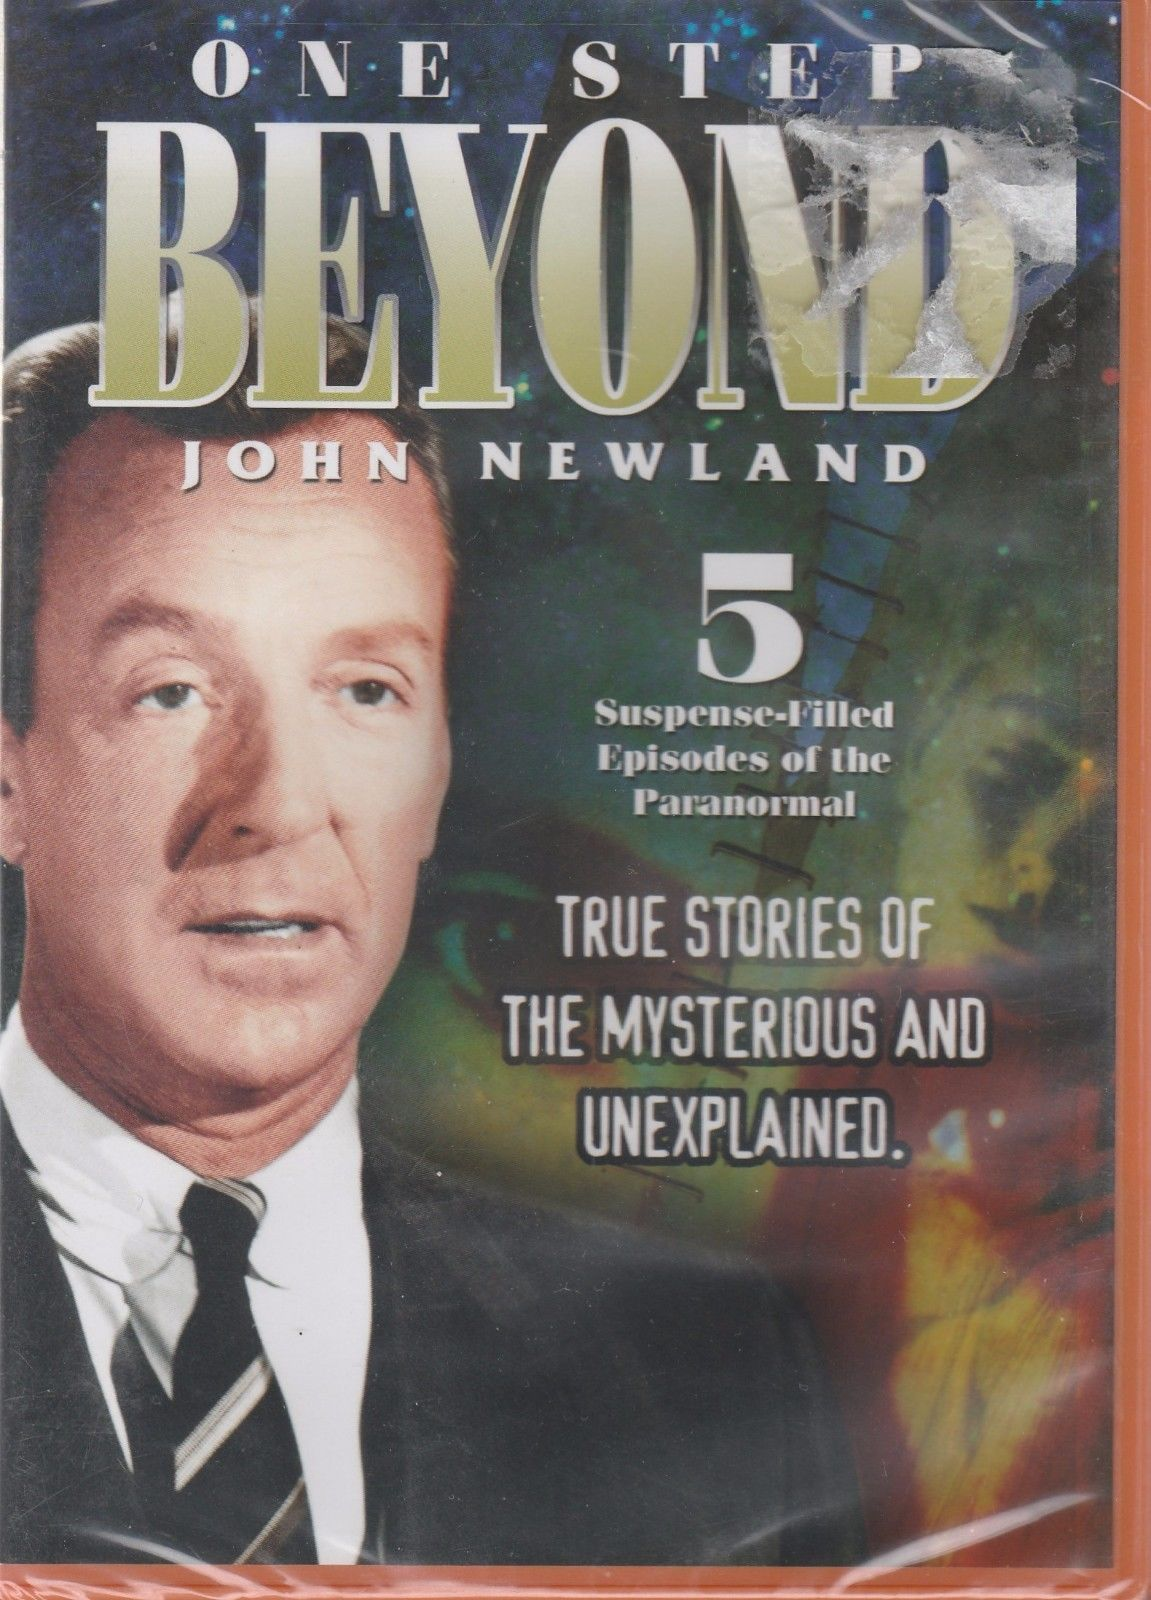 Primary image for One Step Beyond: Vol. 1 - 5 Episodes (DVD, 2008) NEW